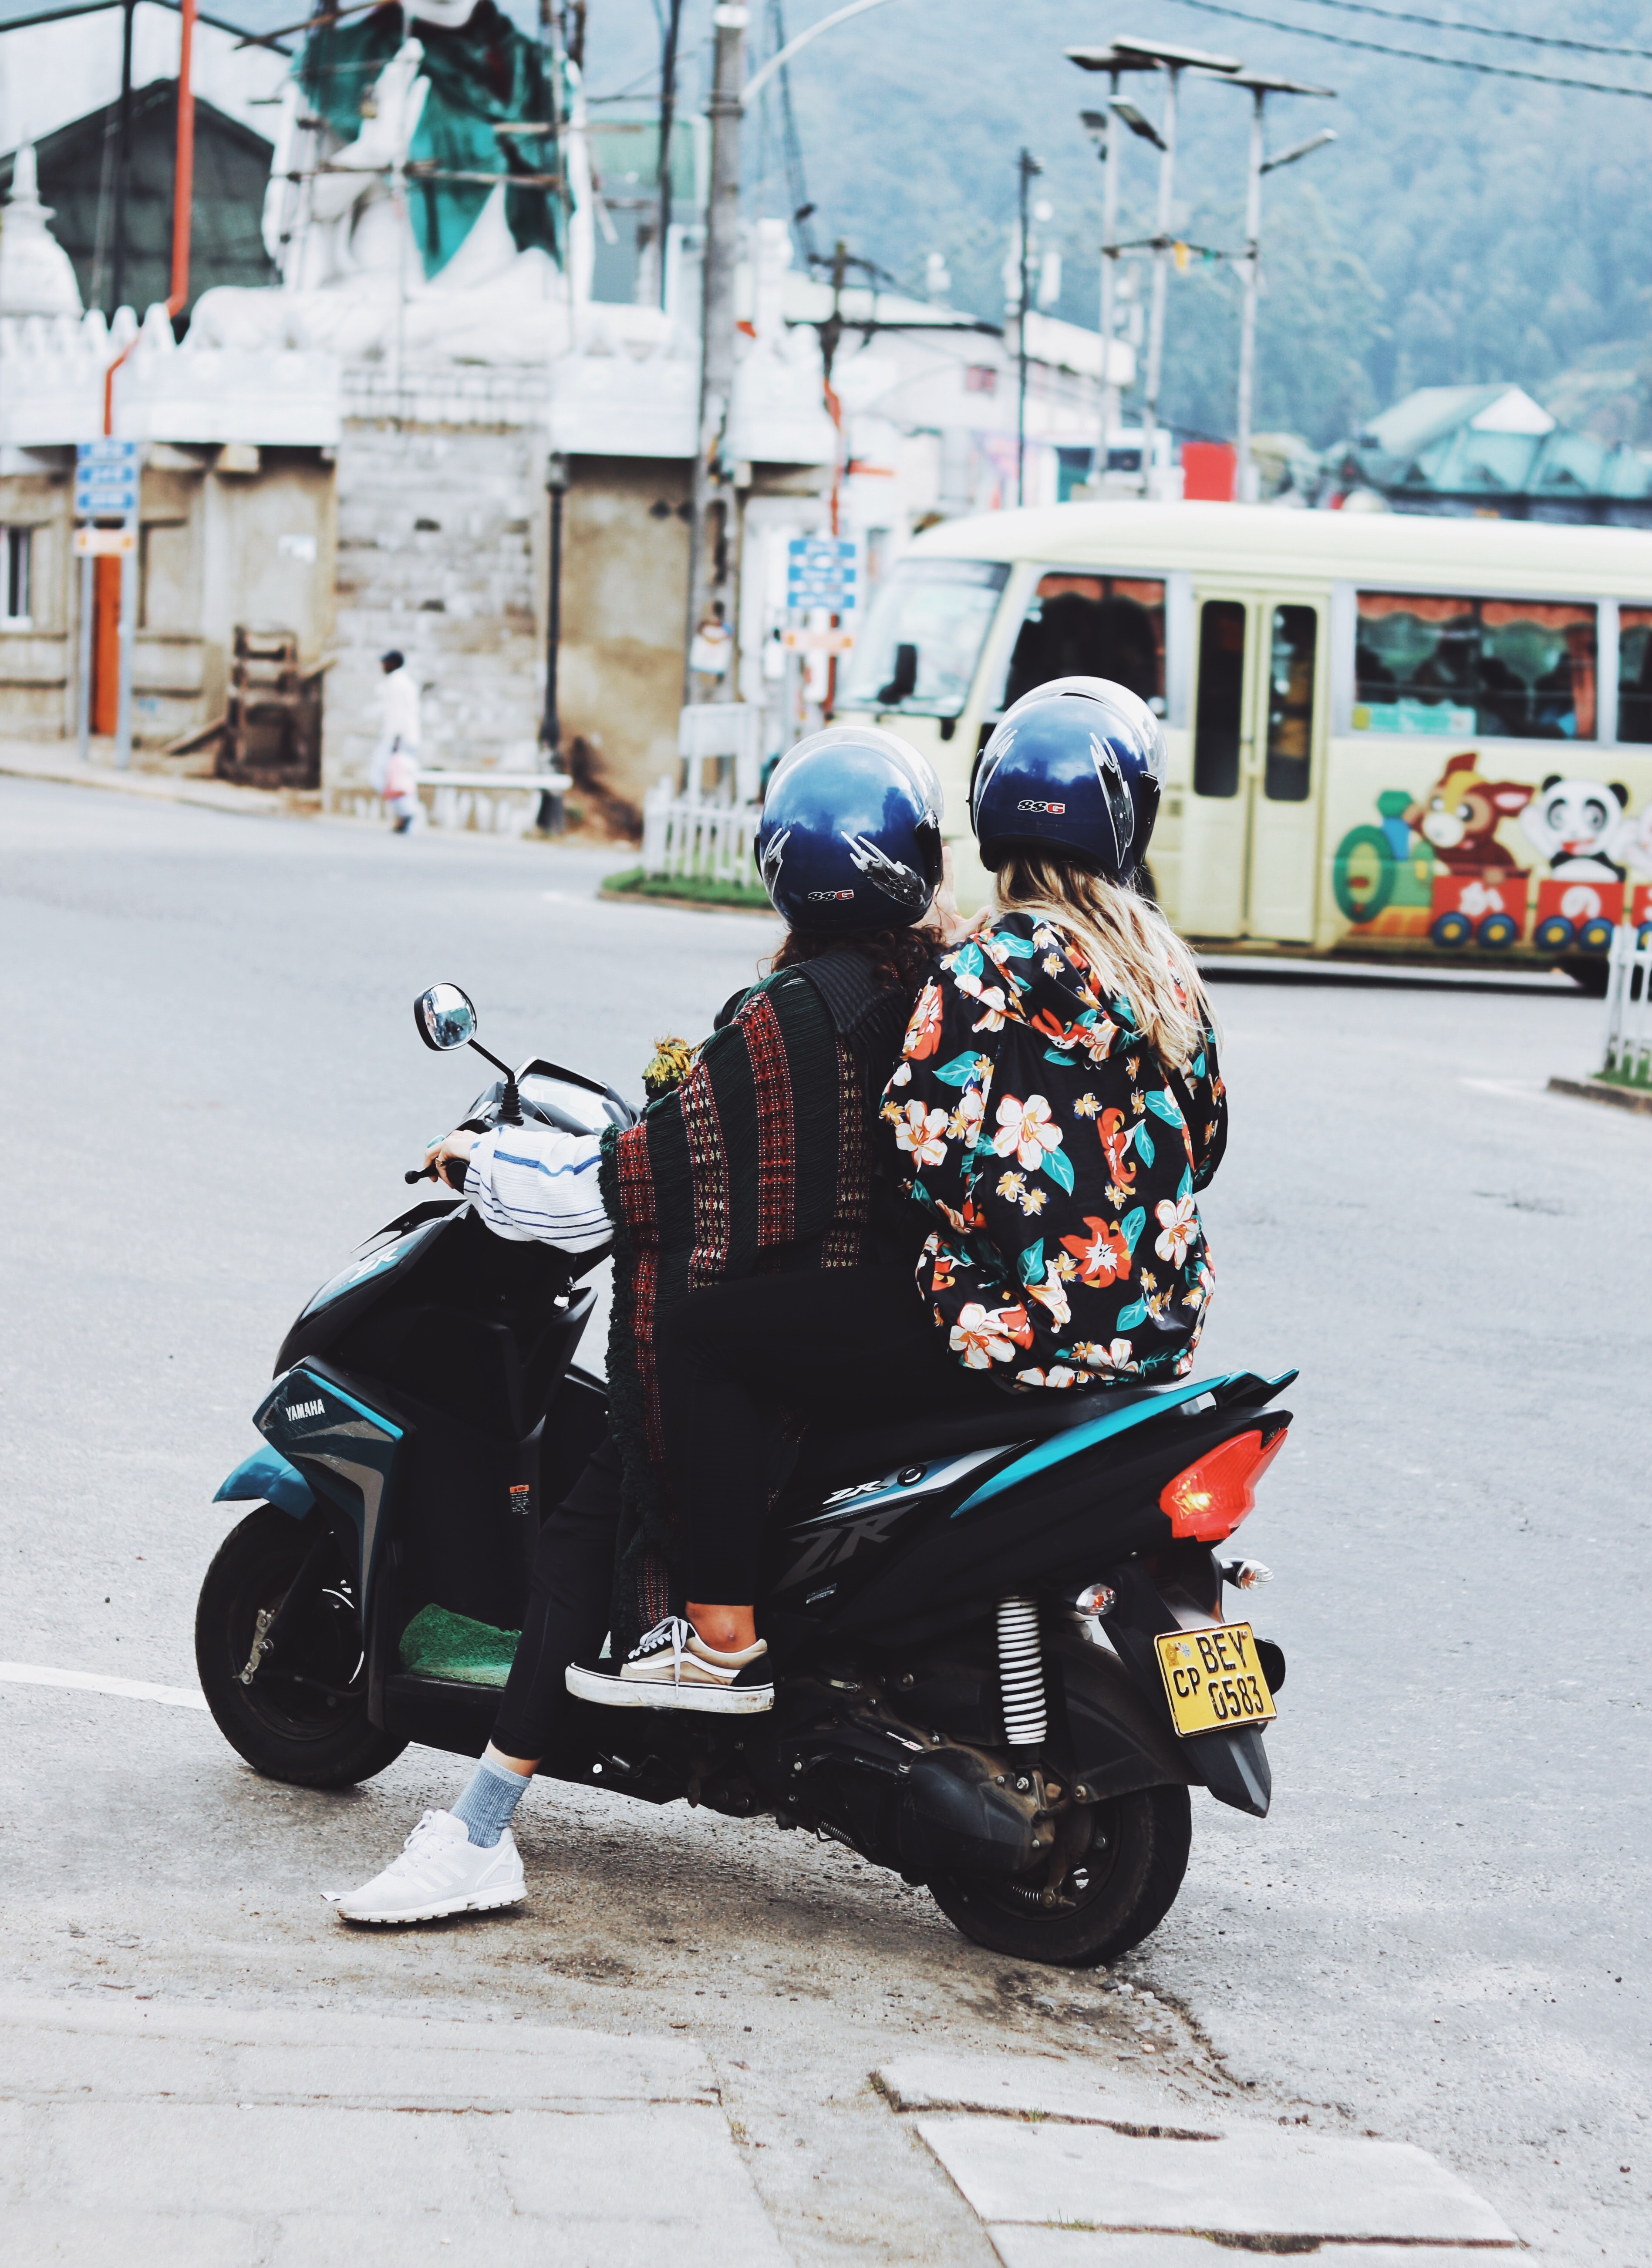 two person riding motor scooter